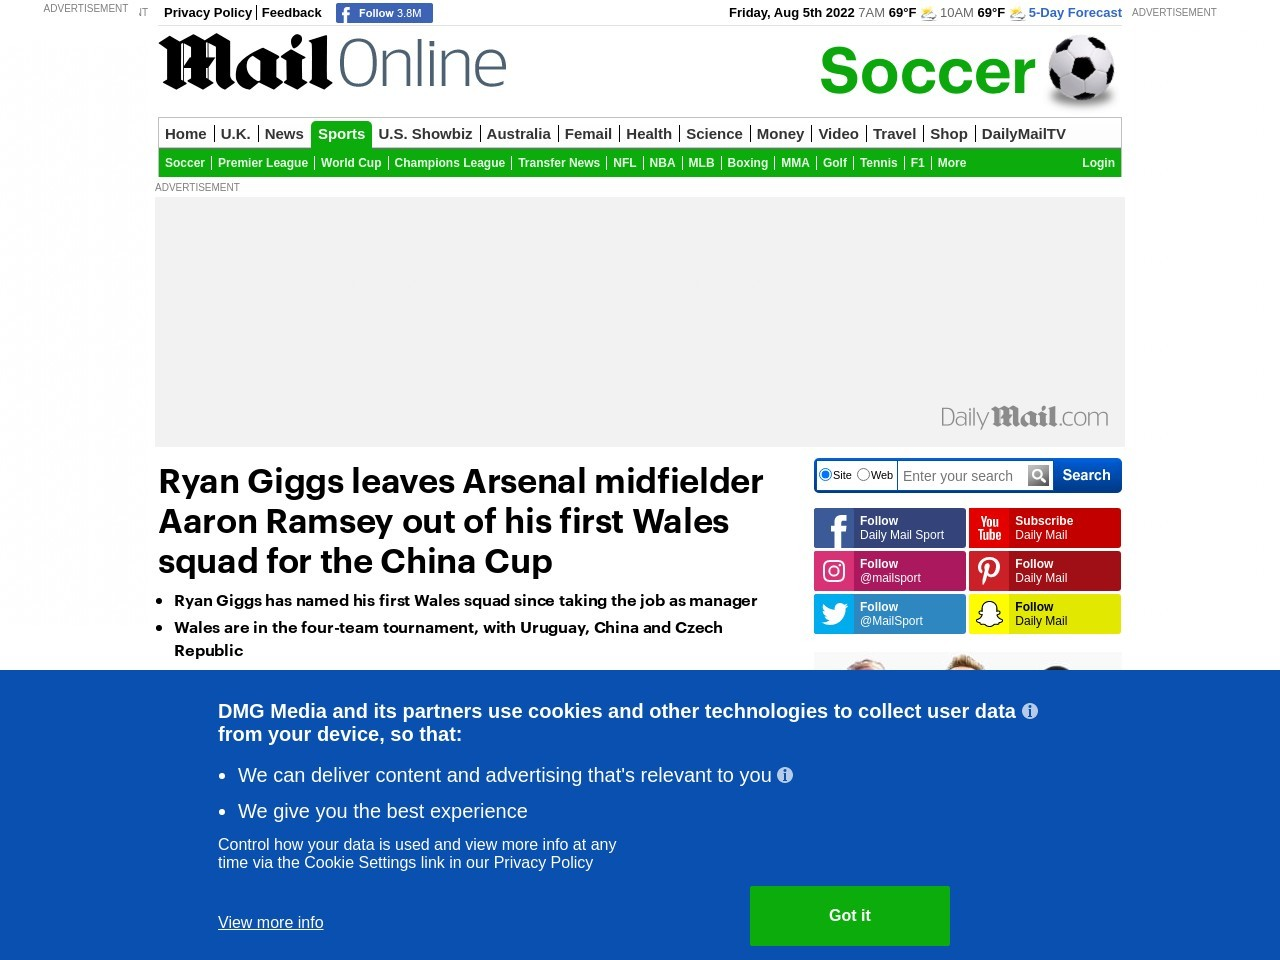 Ryan Giggs leaves Aaron Ramsey out of his first Wales squad